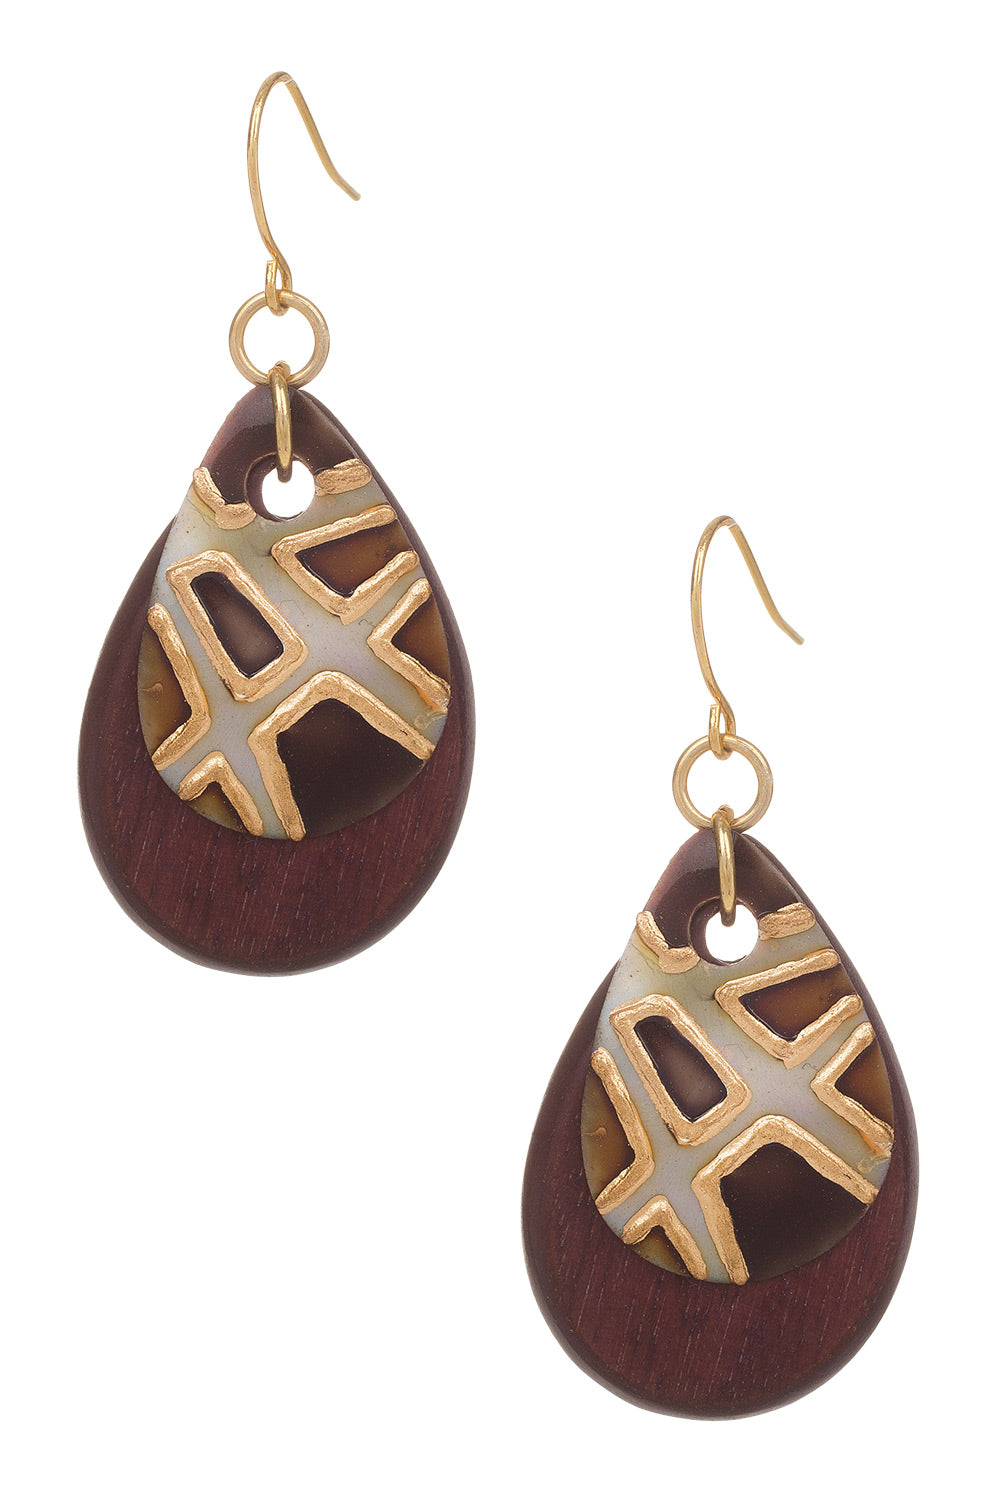 Type 3 Morocco Earrings